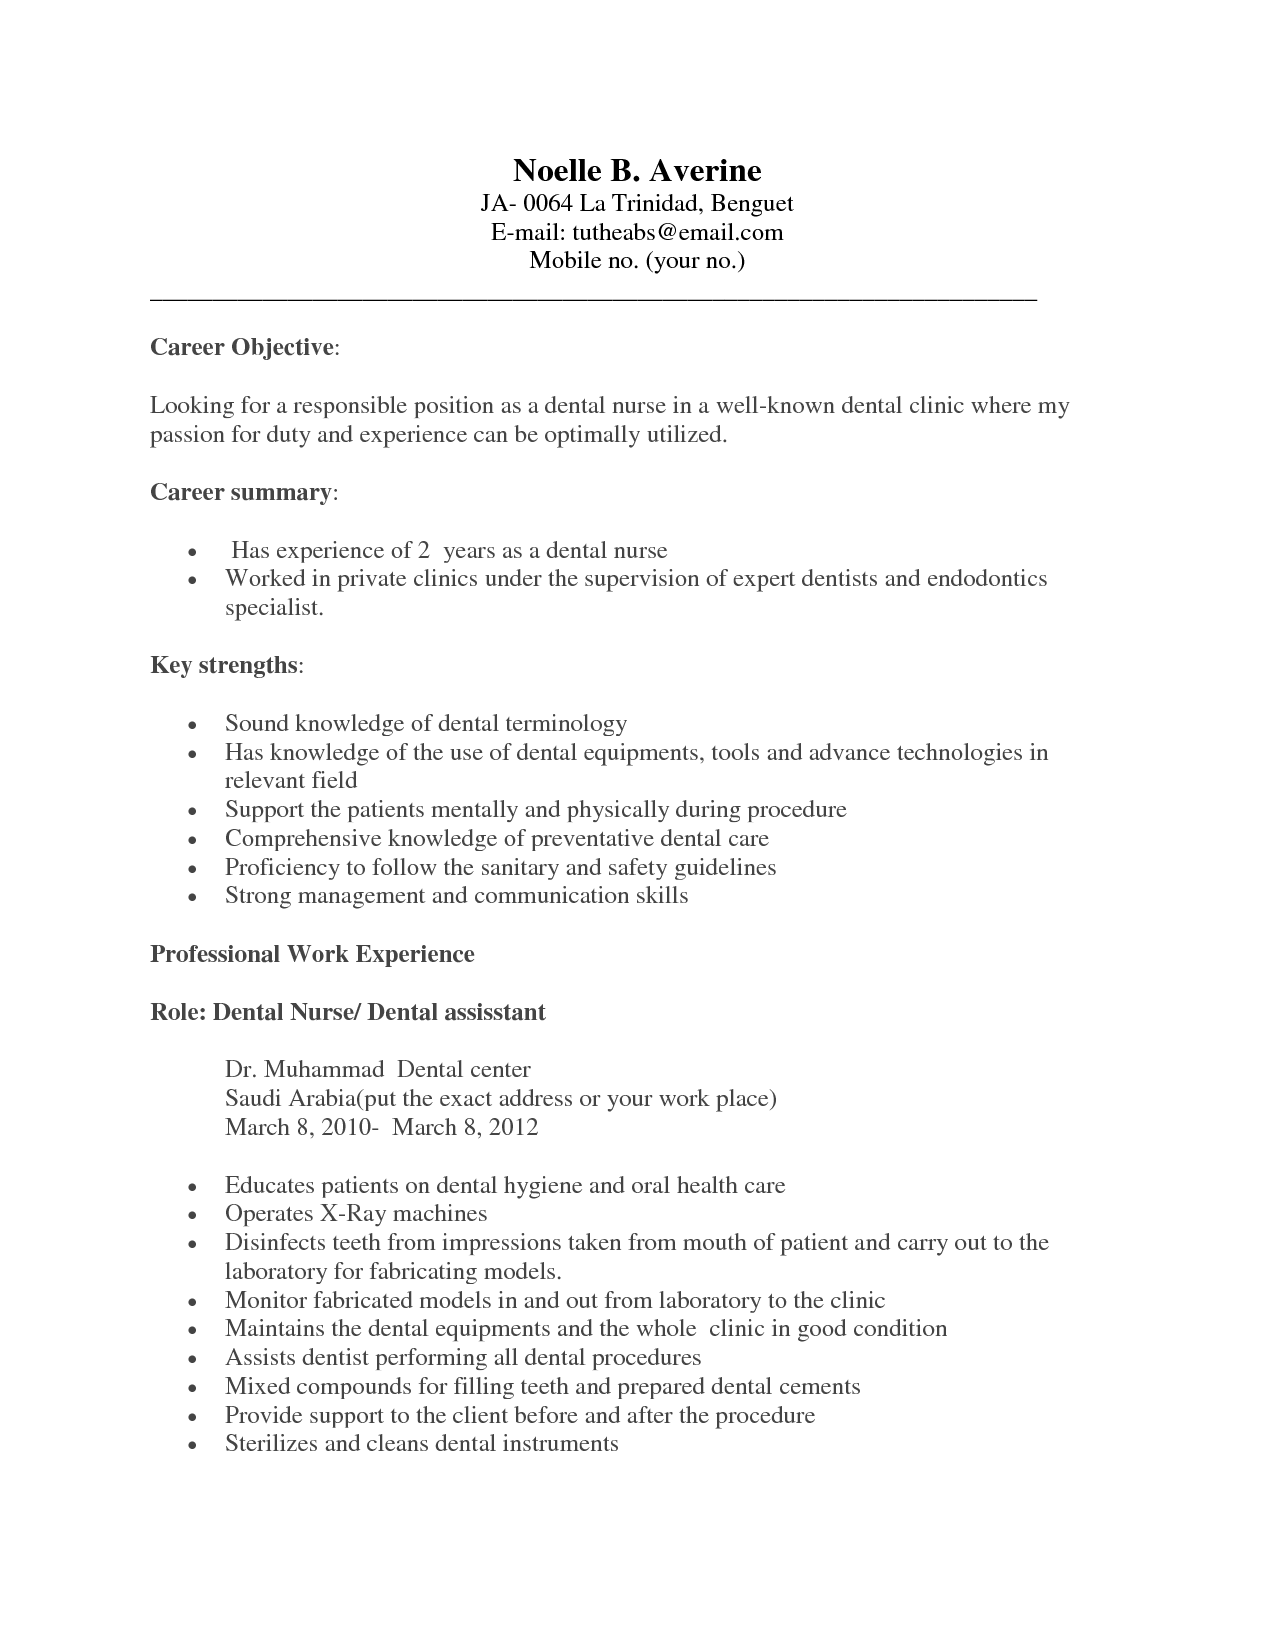 medical assistant student resume medical office assistant resume no experience dental assistant resume no experience - Dental Assistant Objective For Resume